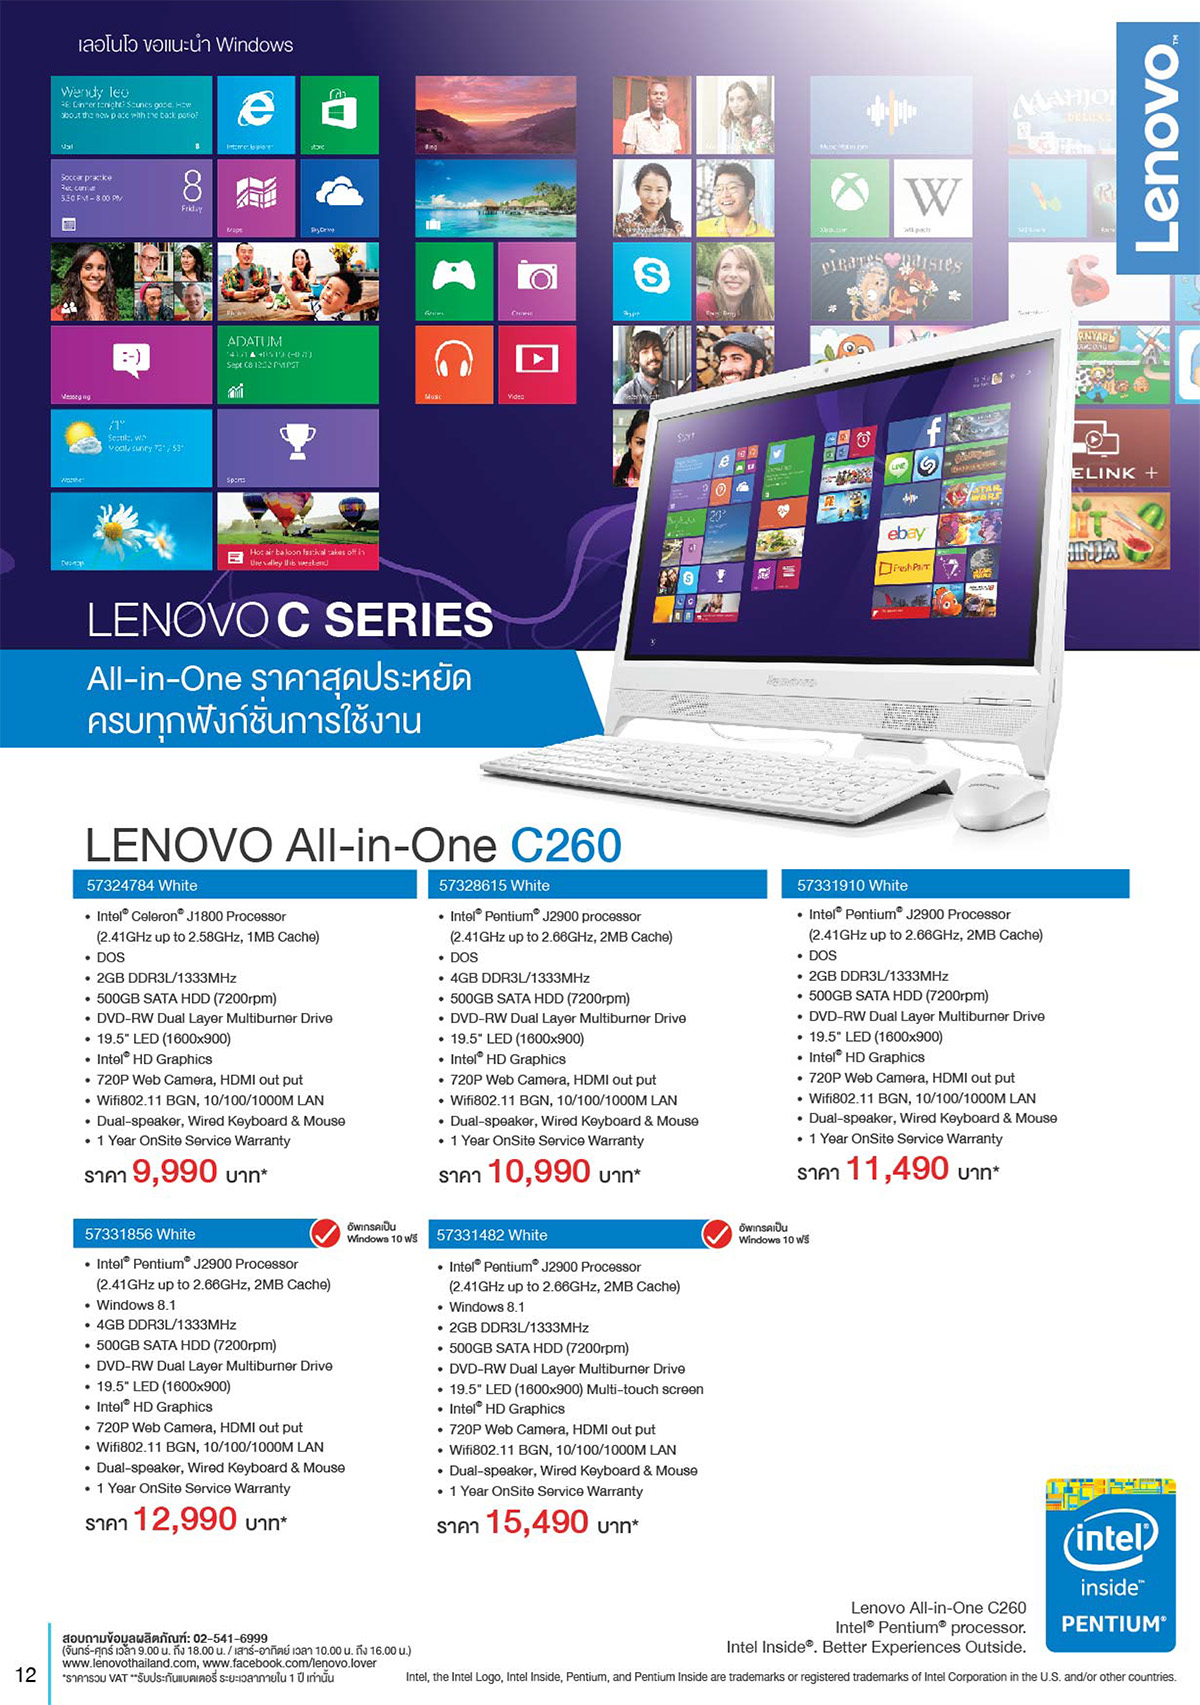 Lenovo Consumer Product Catalog Q2FY15_Final AW-12